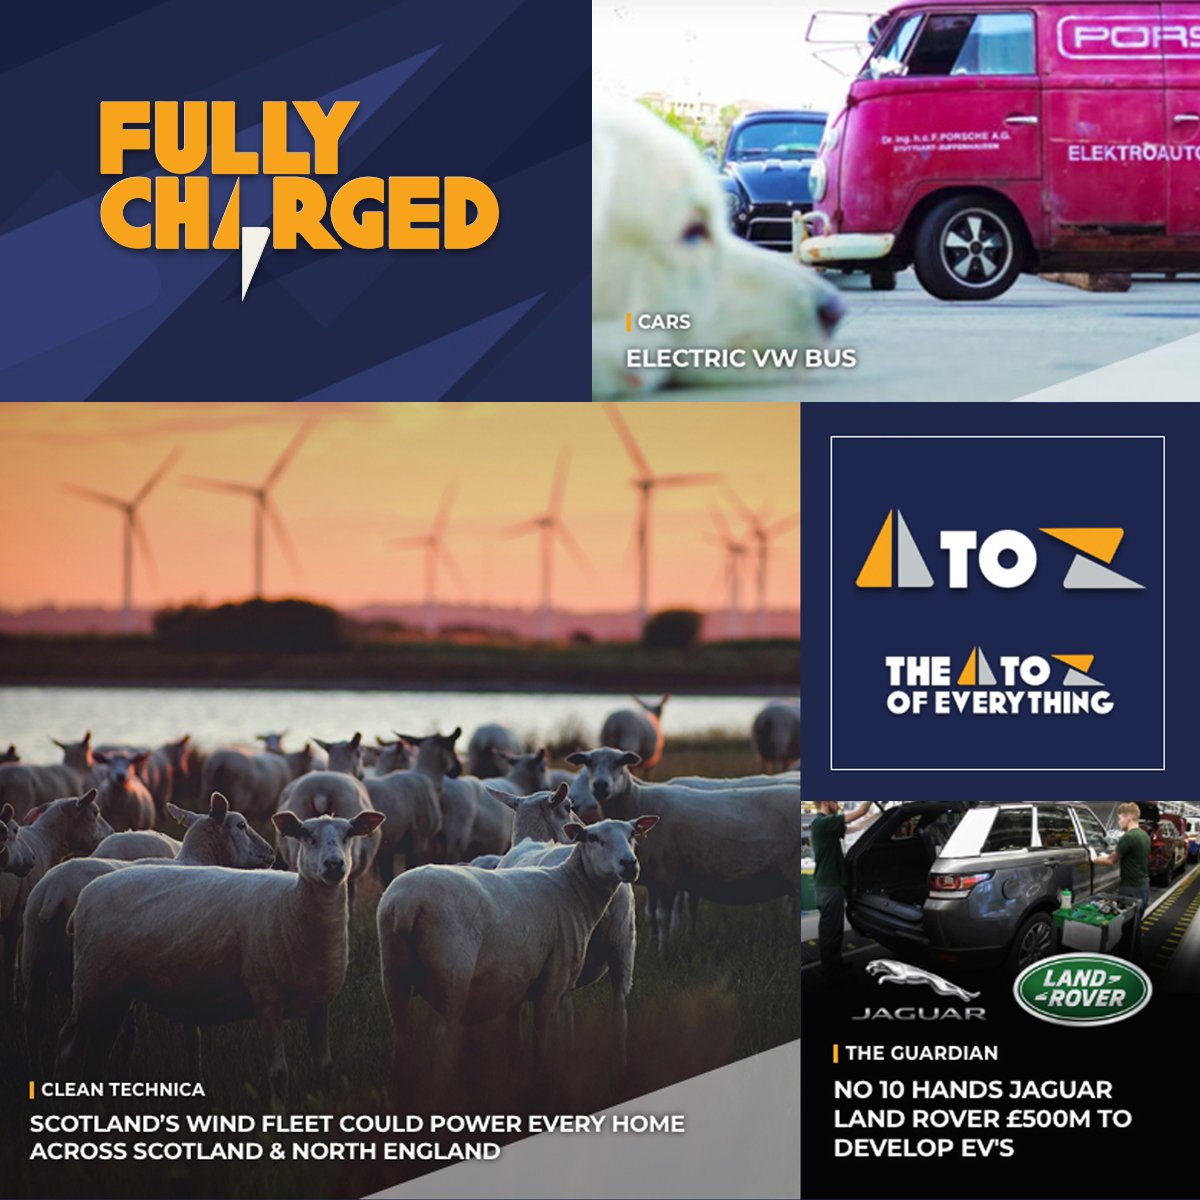 Over on http://FullyCharged.Show ... - Scottish renewable success continues - Converted electric VW bus review with Jonny  - No.10 hands Jaguar £500m for EV drive And much more besides! Bookmark it today!